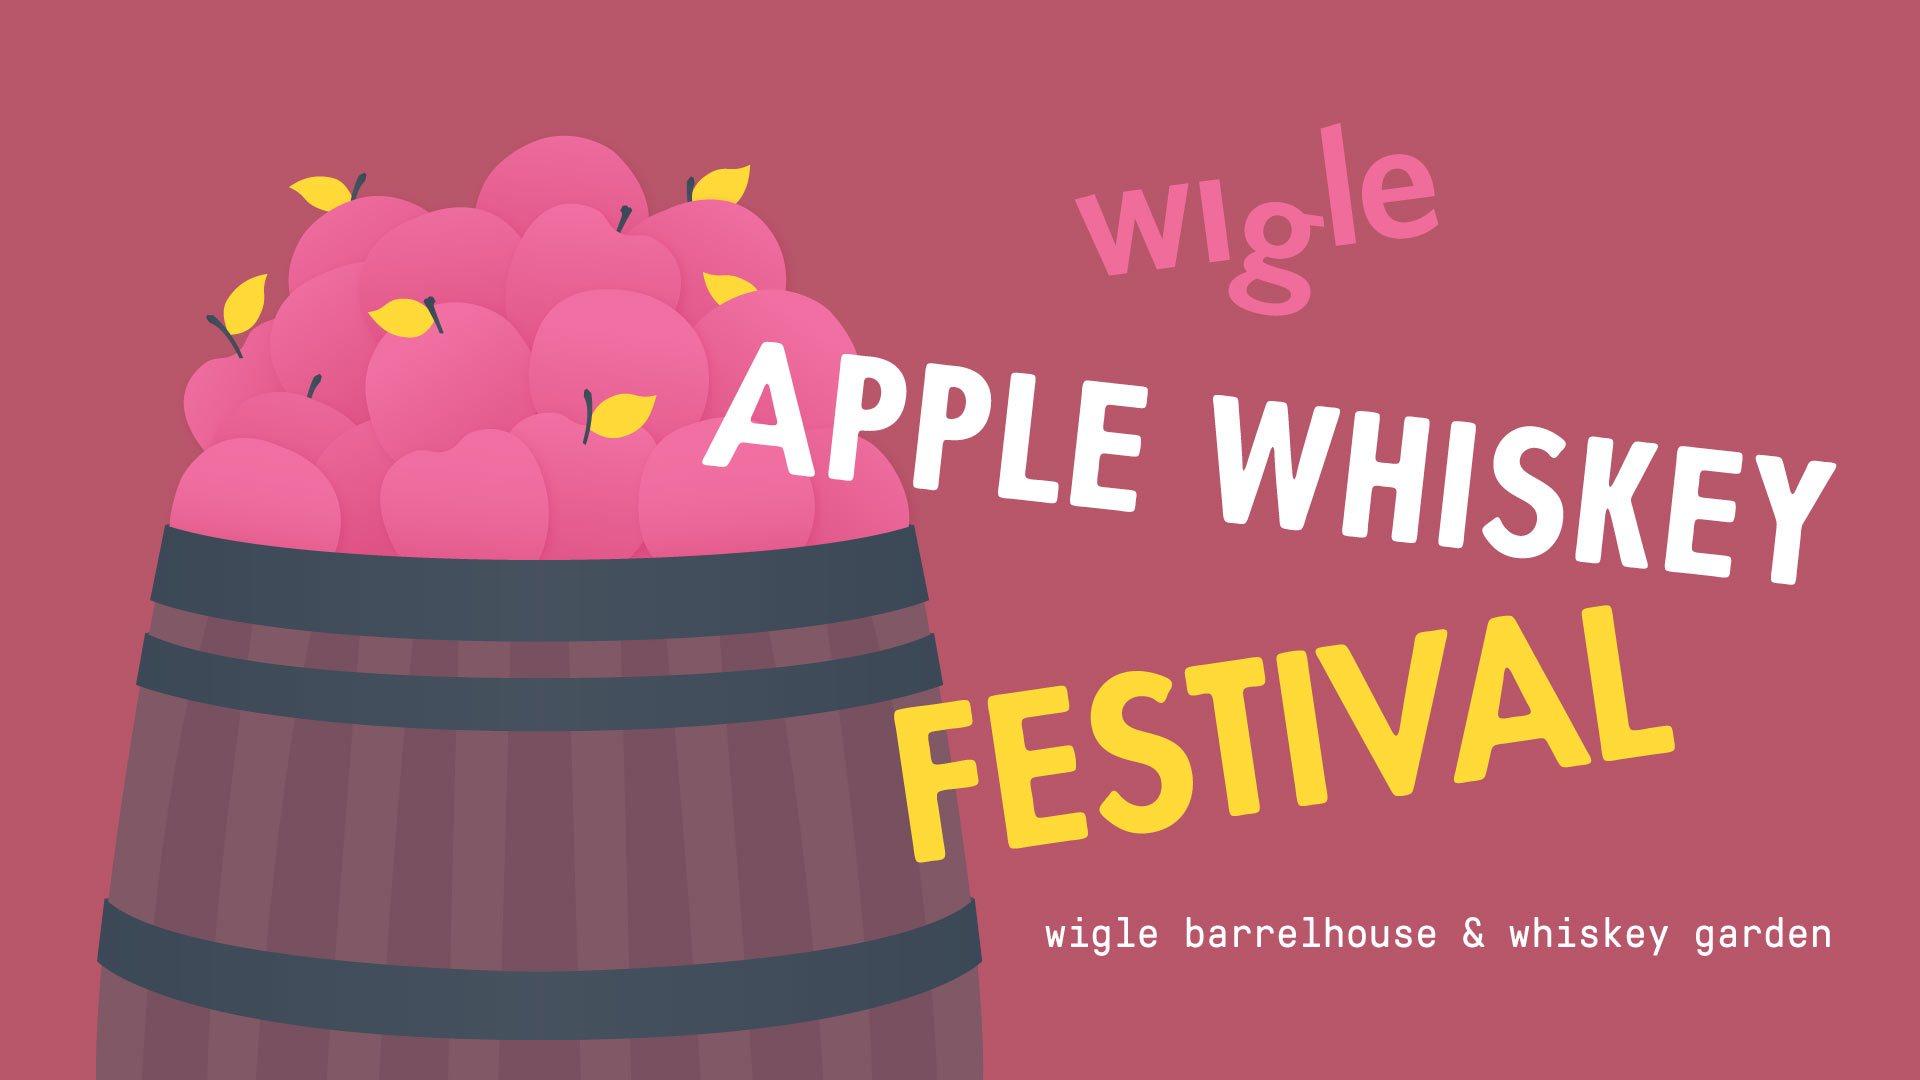 Friday, October 4th - Apple Whiskey Festival - Wigle Barrelhouse & Whiskey Garden